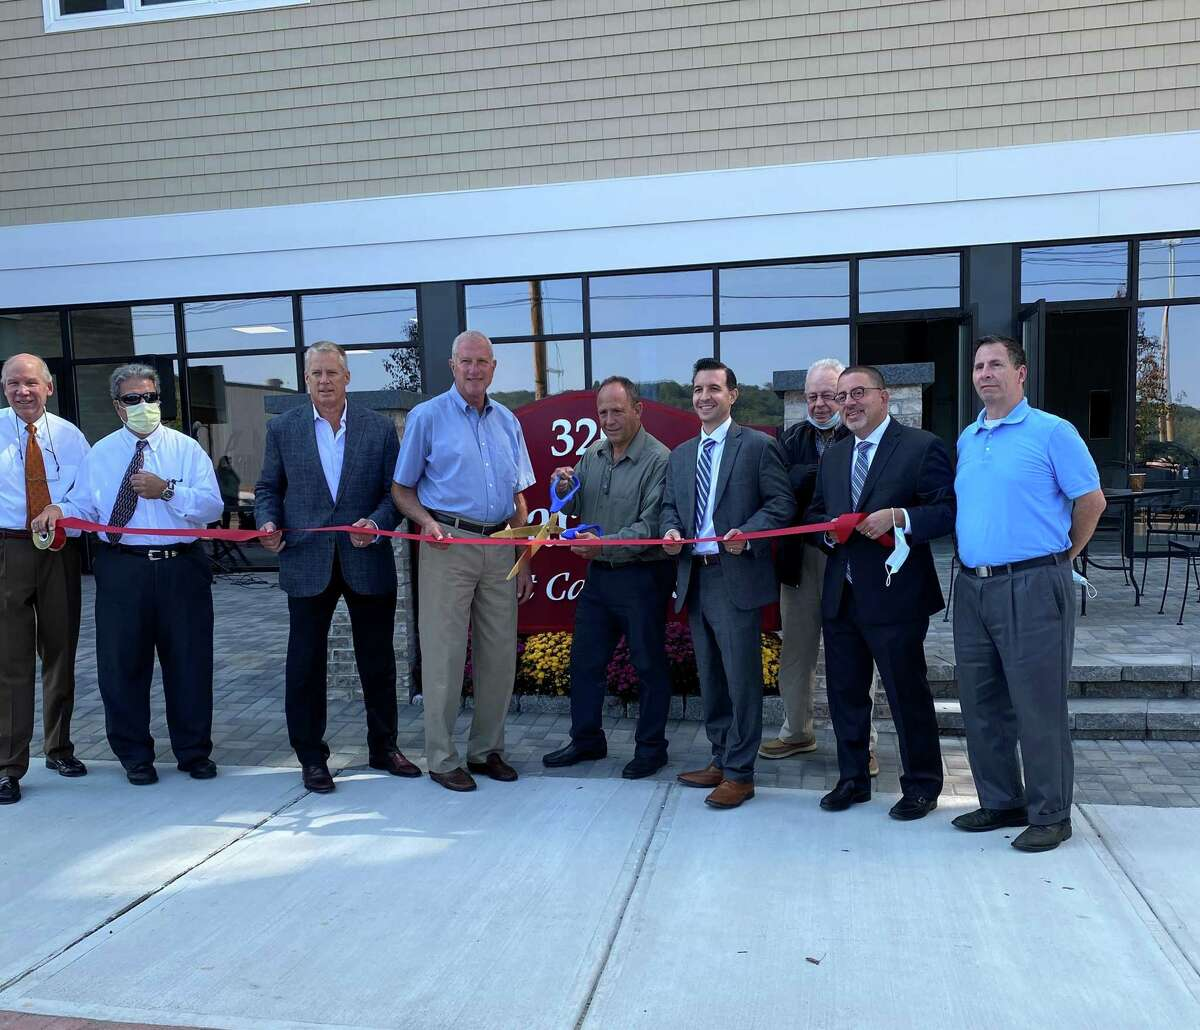 Developer Don Stanziale was joined by Mayor Mark Lauretti and members of the Board of Aldermen and Greater Valley Chamber of Commerce on Wednesday, Sept. 23, in celebrating the grand opening of Cedar Village at Carroll's on Howe Avenue.